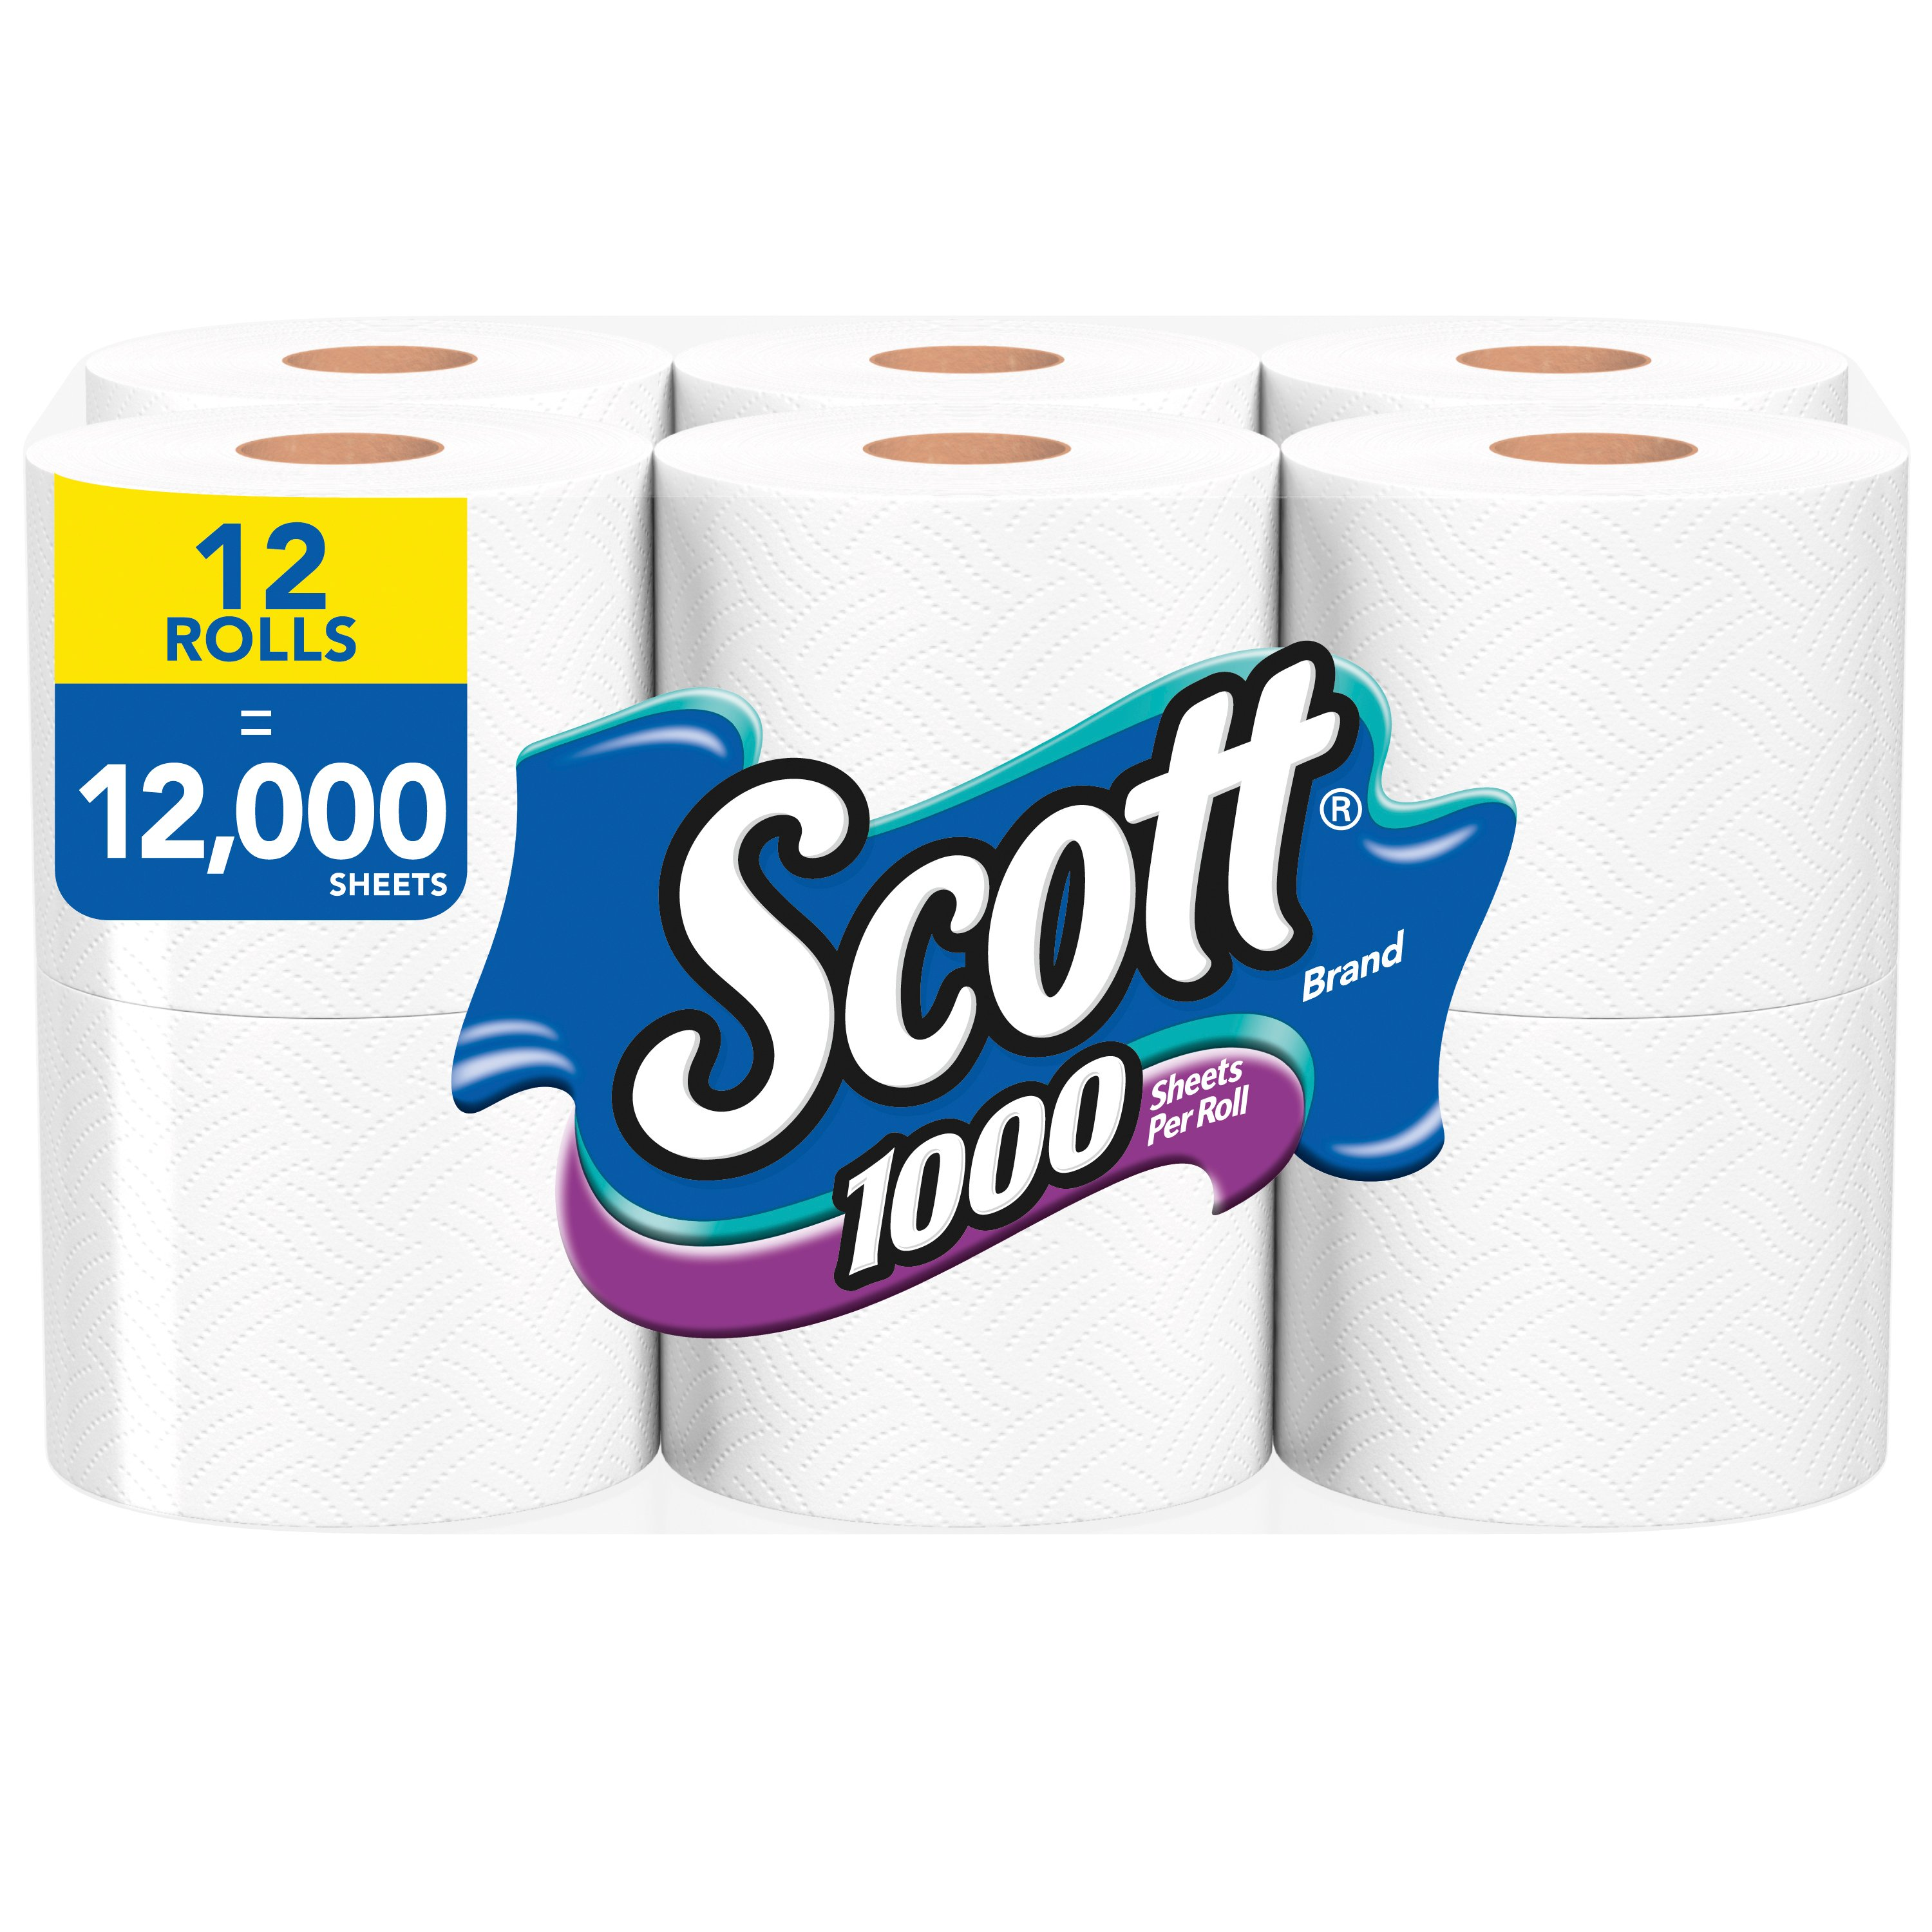 Scott 1000 Sheets Bath Tissue - Shop Bath Tissue at HEB